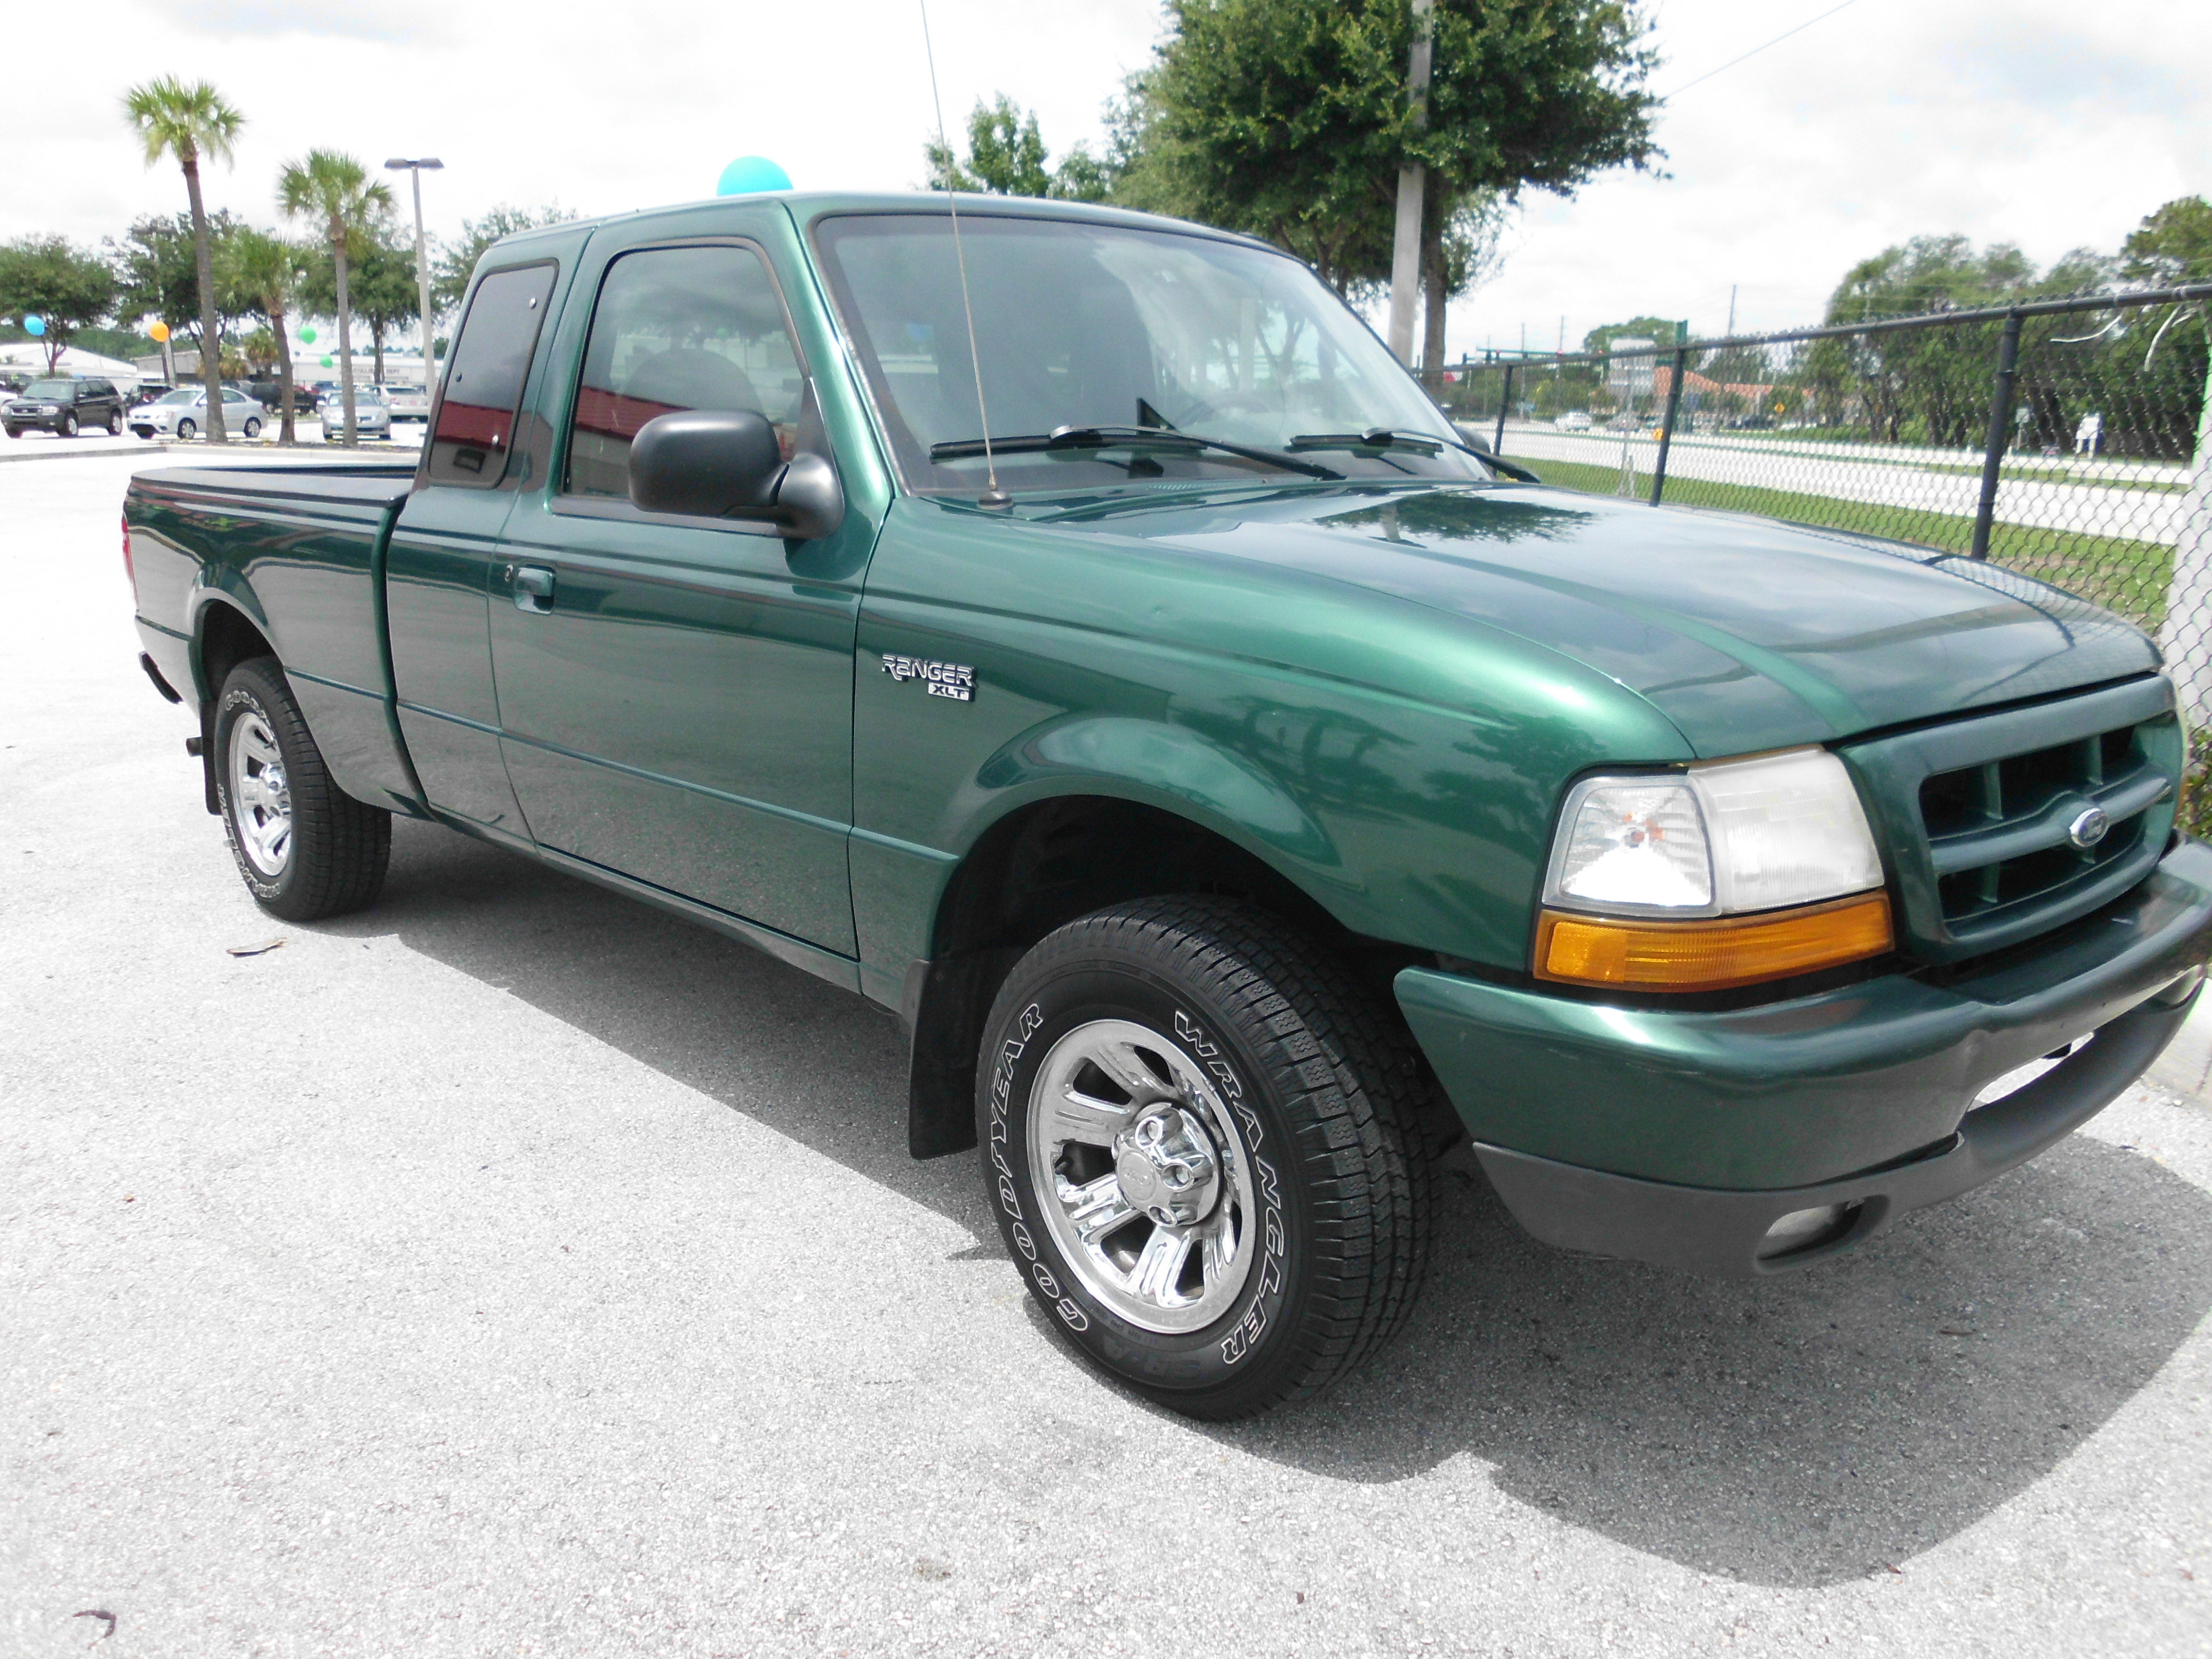 2000 Ford Ranger Information And Photos Zombiedrive